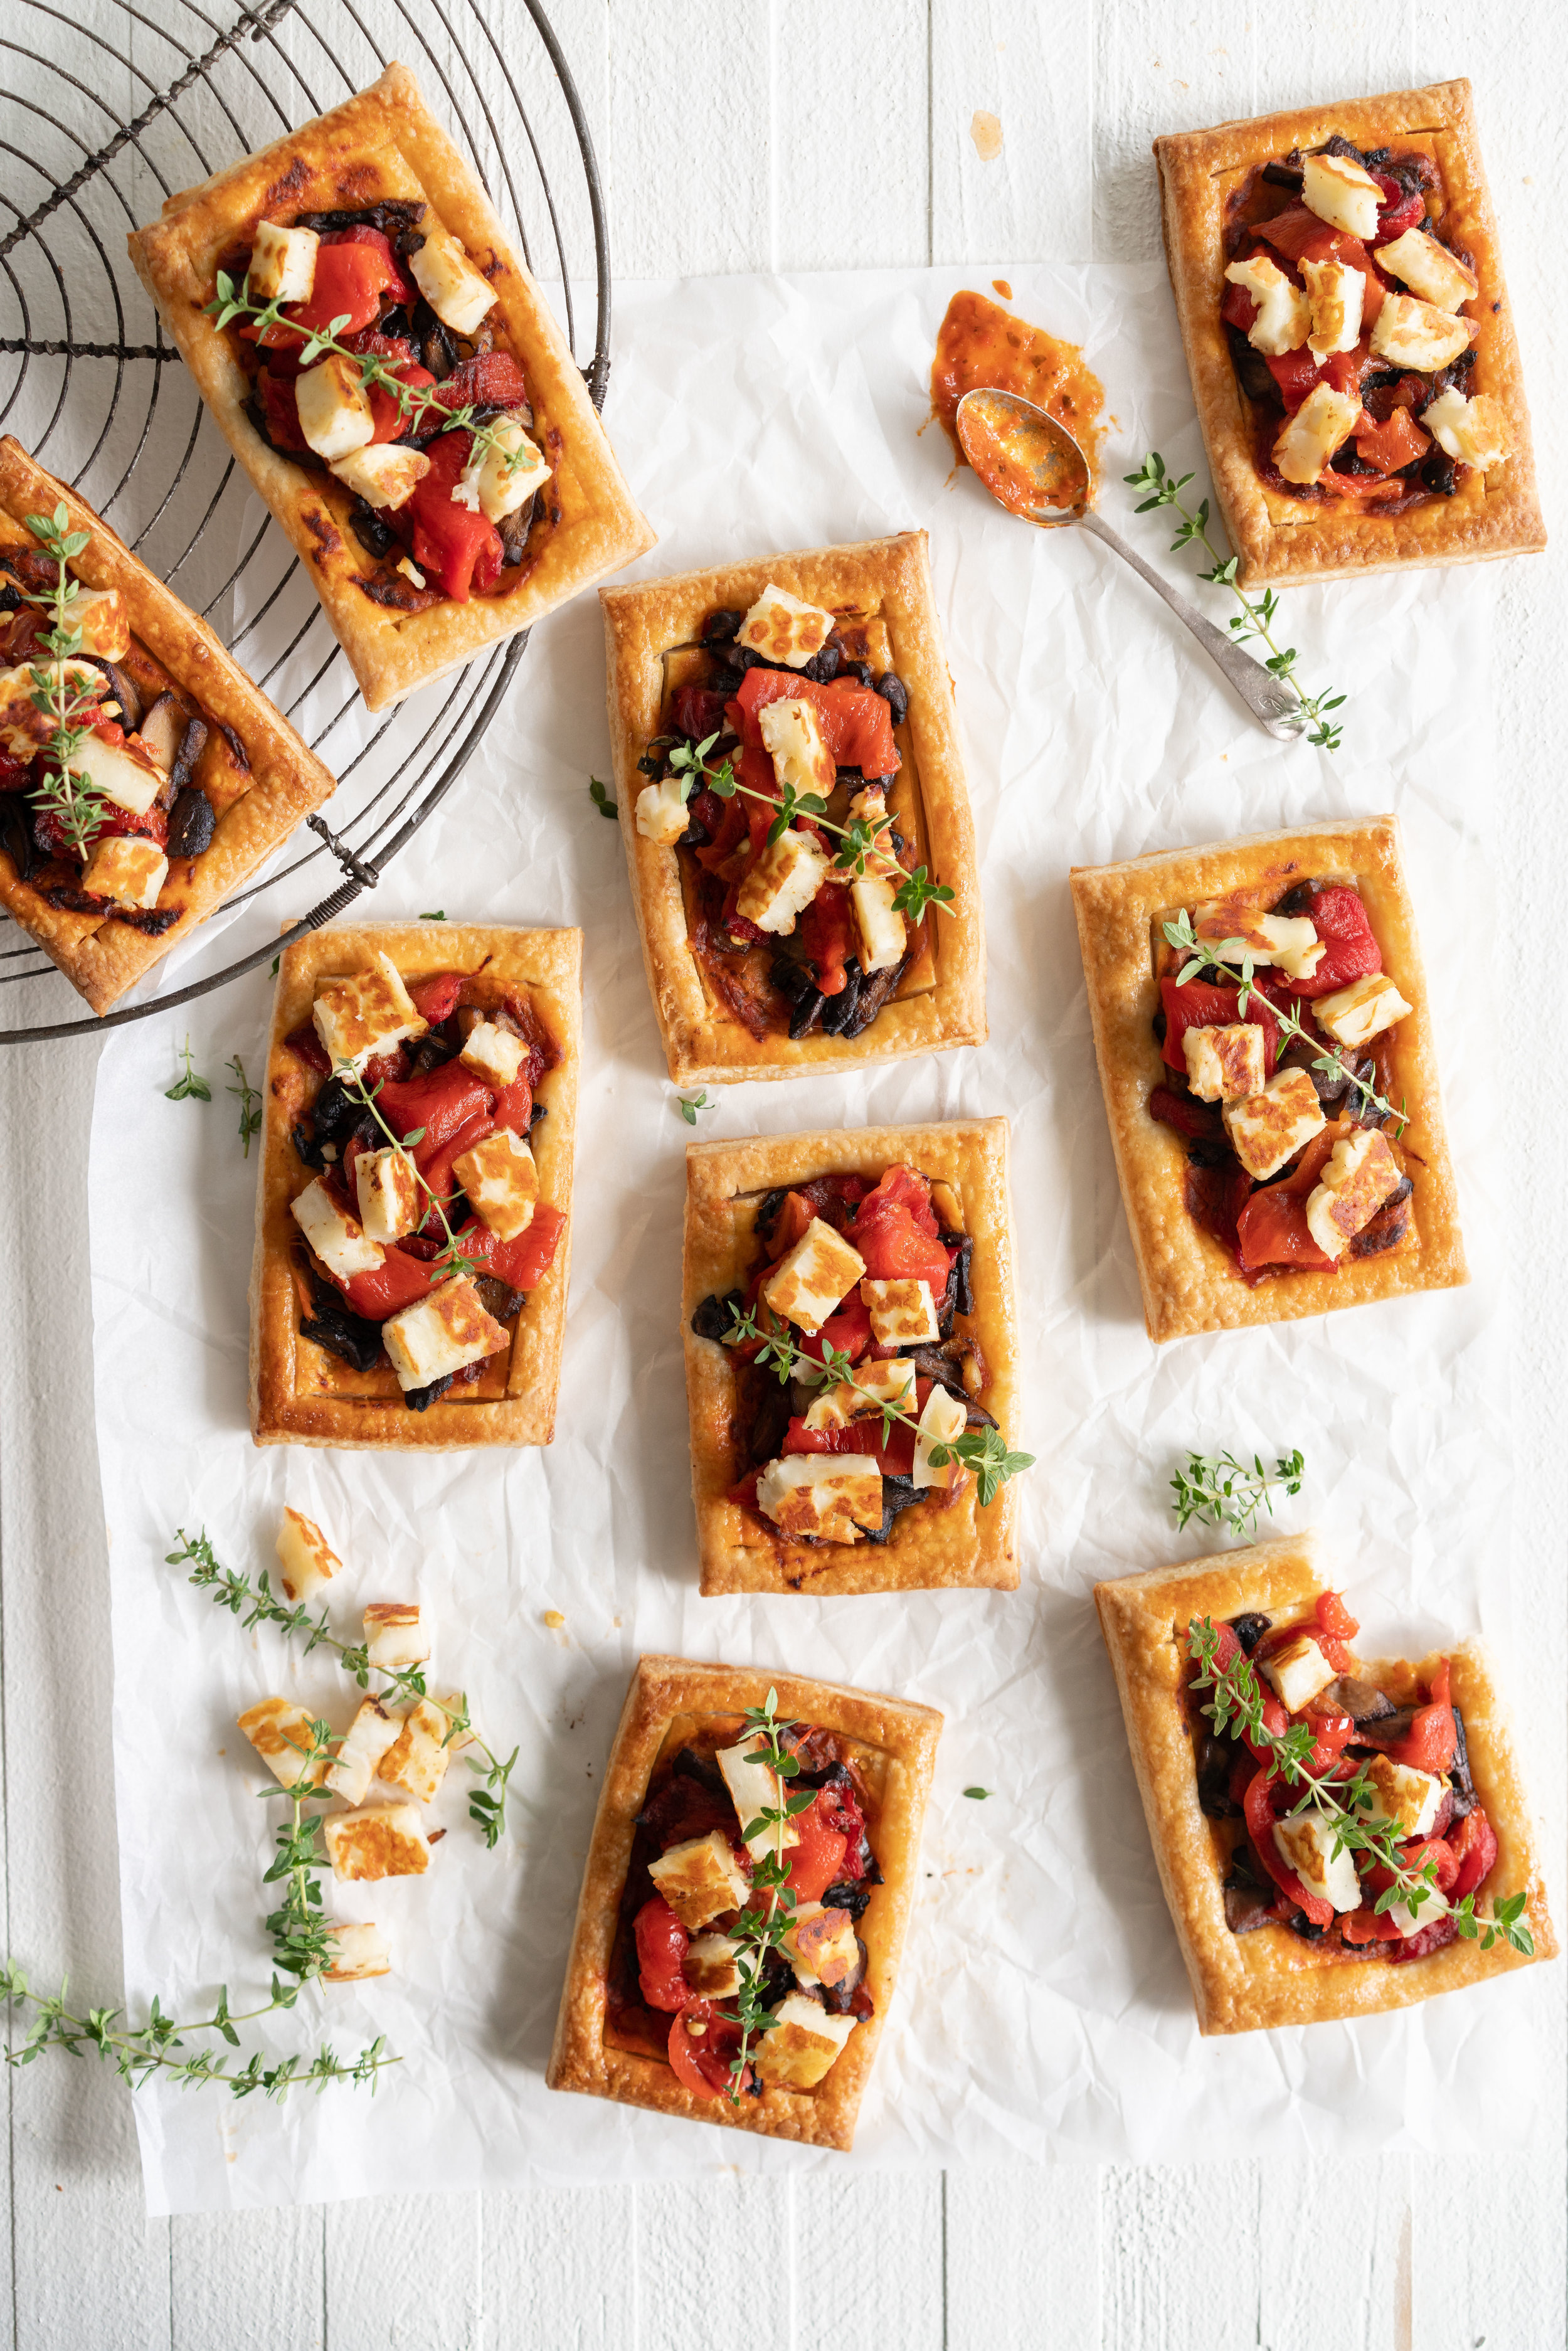 Chili Pesto, Mushroom, Roasted Red Pepper and Halloumi Tarts with Homemade Puff Pastry. The perfect appetizer or summer dinner - make these whatever size you want, they are bound to be a crowd pleaser! #mushroomtart #halloumi #chili #chilli #pesto #puffpastry #tart